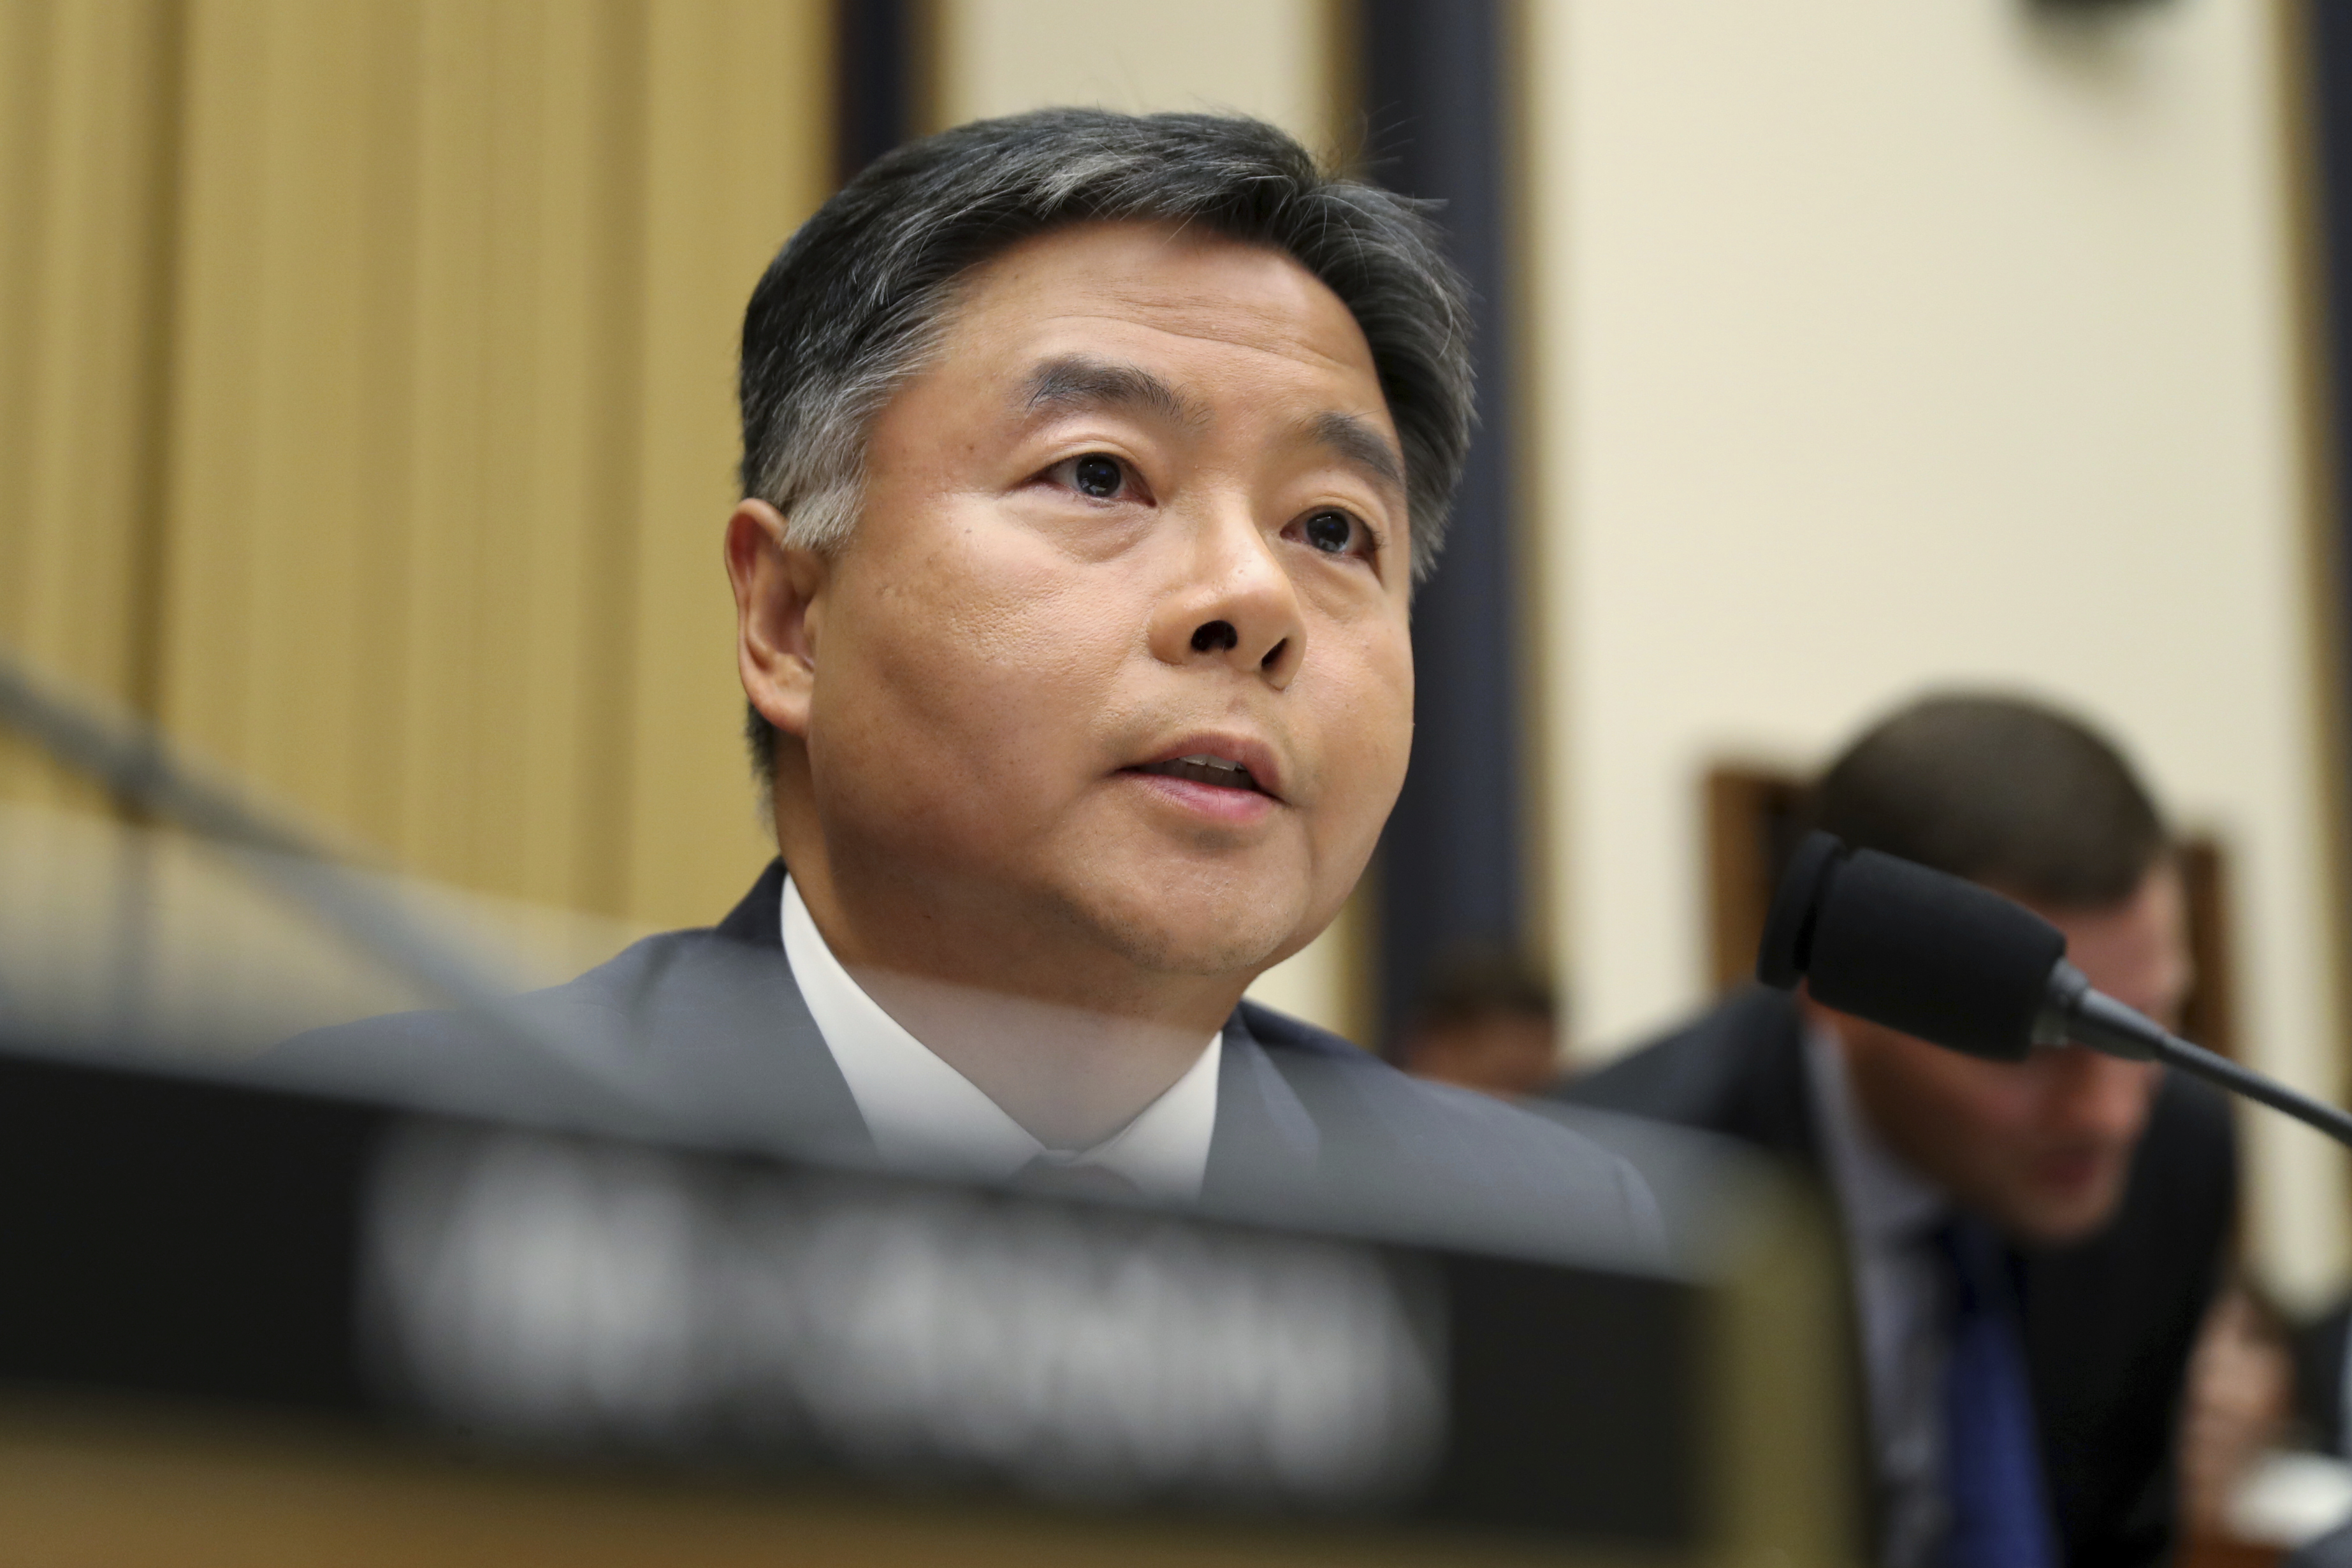 Rep. Ted Lieu apologizes for 'dual loyalty' tweet to U.S. ambassador to Israel